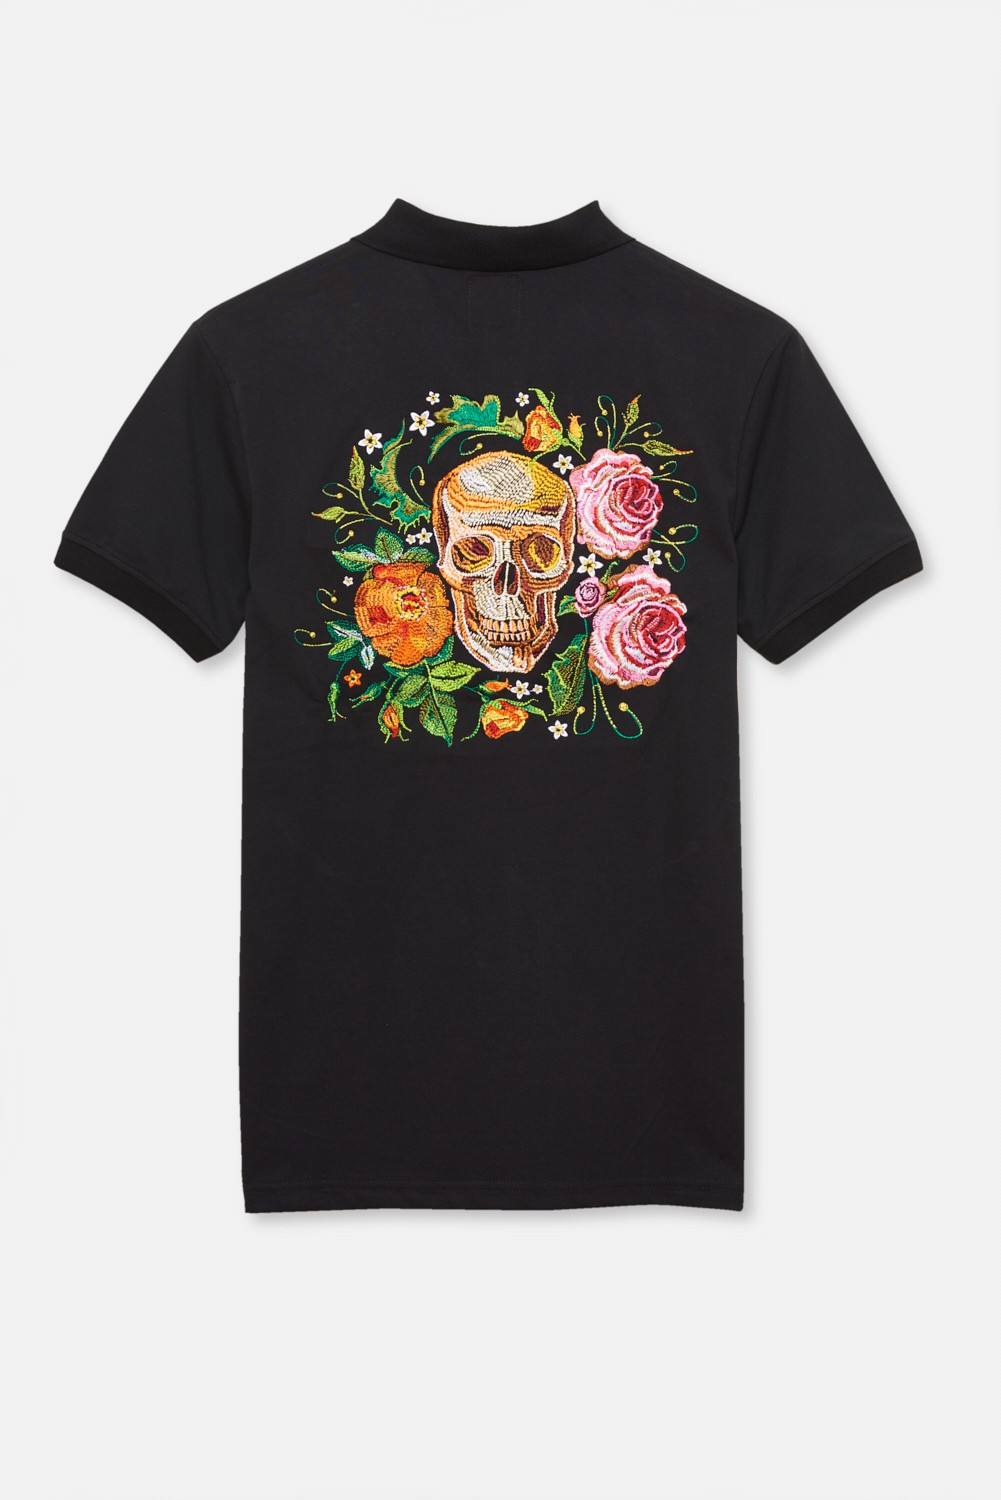 ADULT´S EMBROIDERED POLO THREE ROSES SKULL